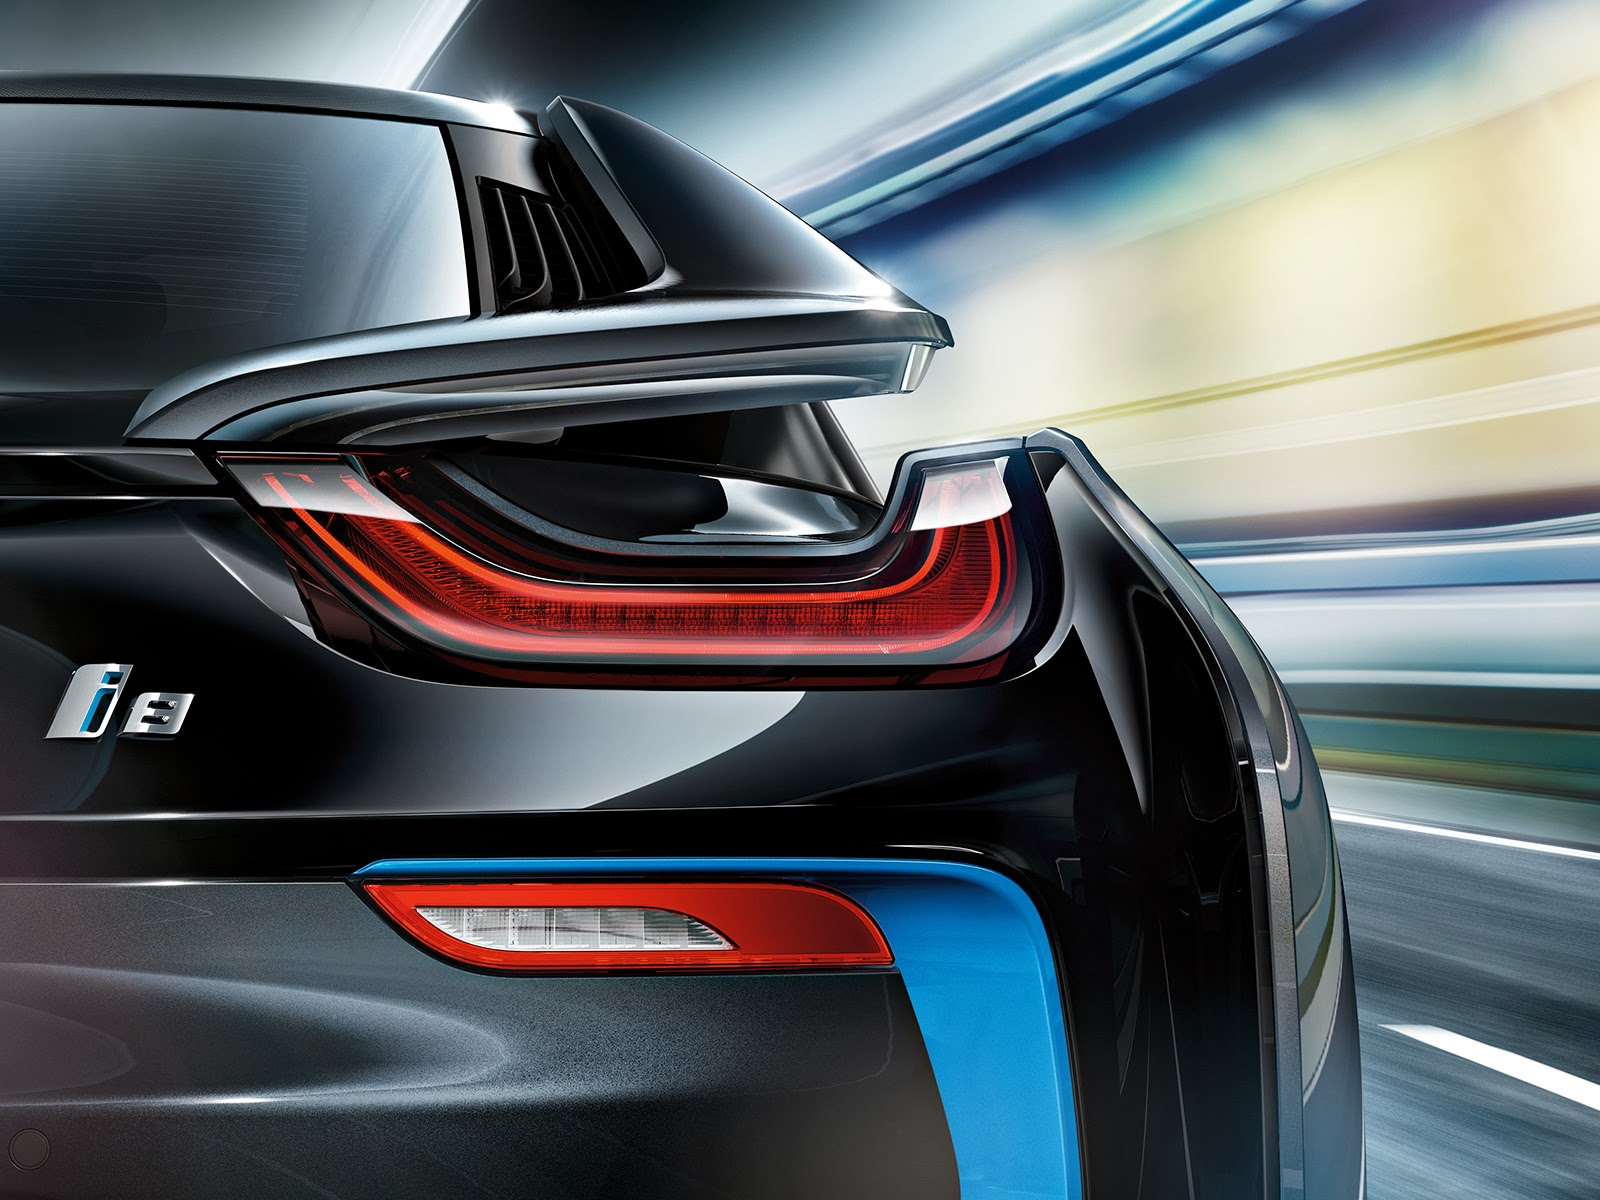 4k Papers Bmw I8 Wallpaper 2014 Bmw I8 Wallpapers 42